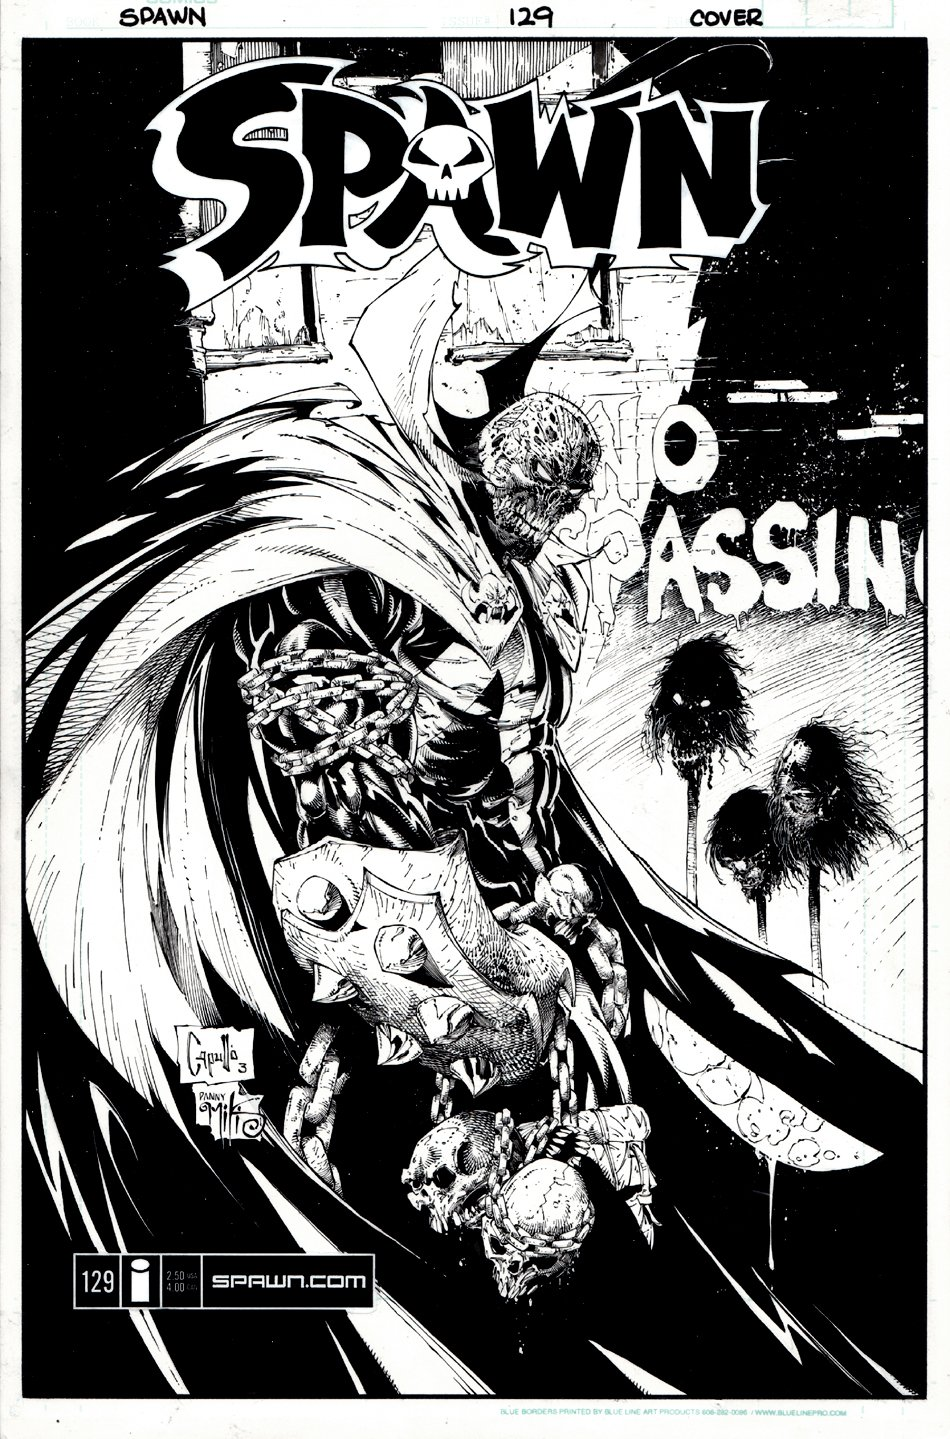 Spawn #129 Cover (2003)